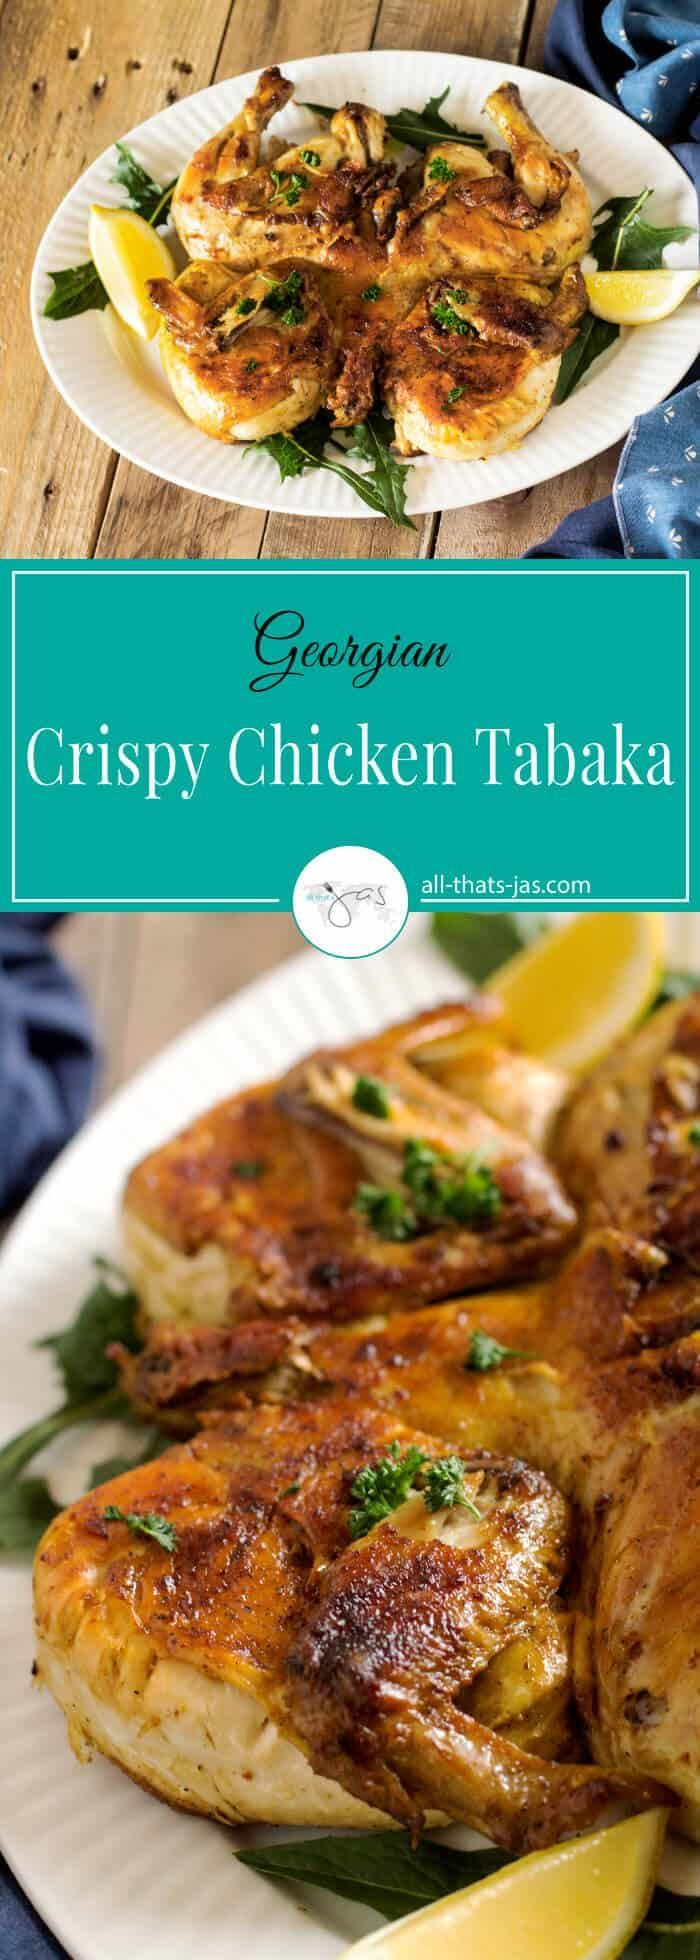 Photo of Pan-Fried Crispy Chicken Tabaka: Georgian Chicken Under a Br…